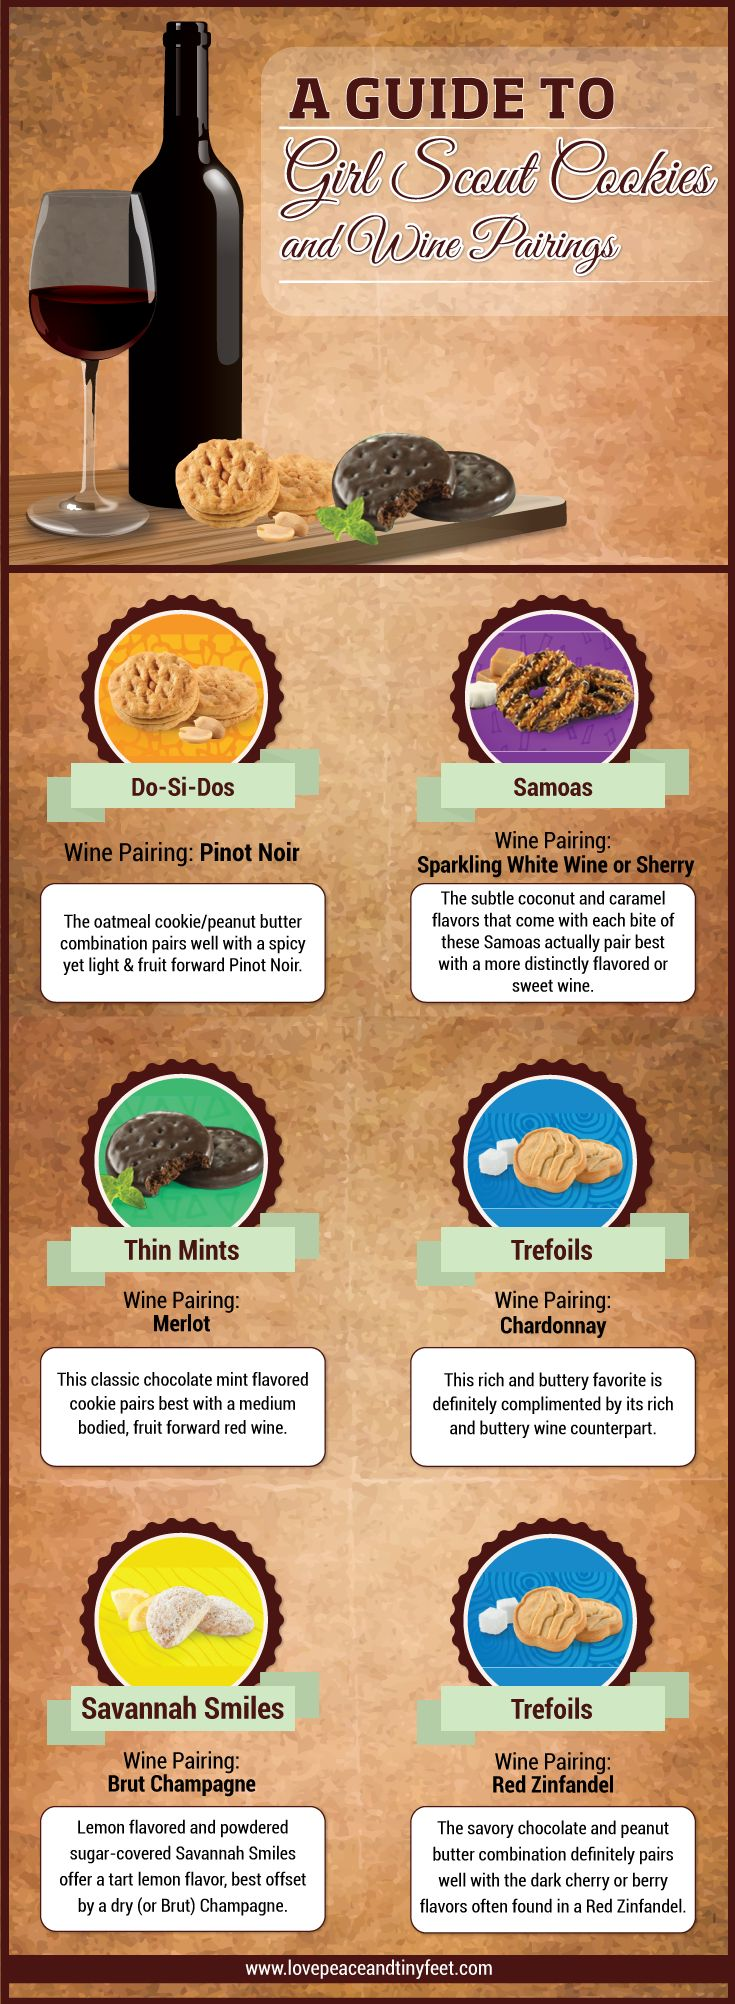 Let's support the good cause of our awesome girls by trying out some of their decadent Girl Scout cookies! But did you know that there are best wines to be paired with these delicious cookies? Check out this fun Girl Scout cookies wine pairing guide:  #girlscoutcookies #winepairing #cookies